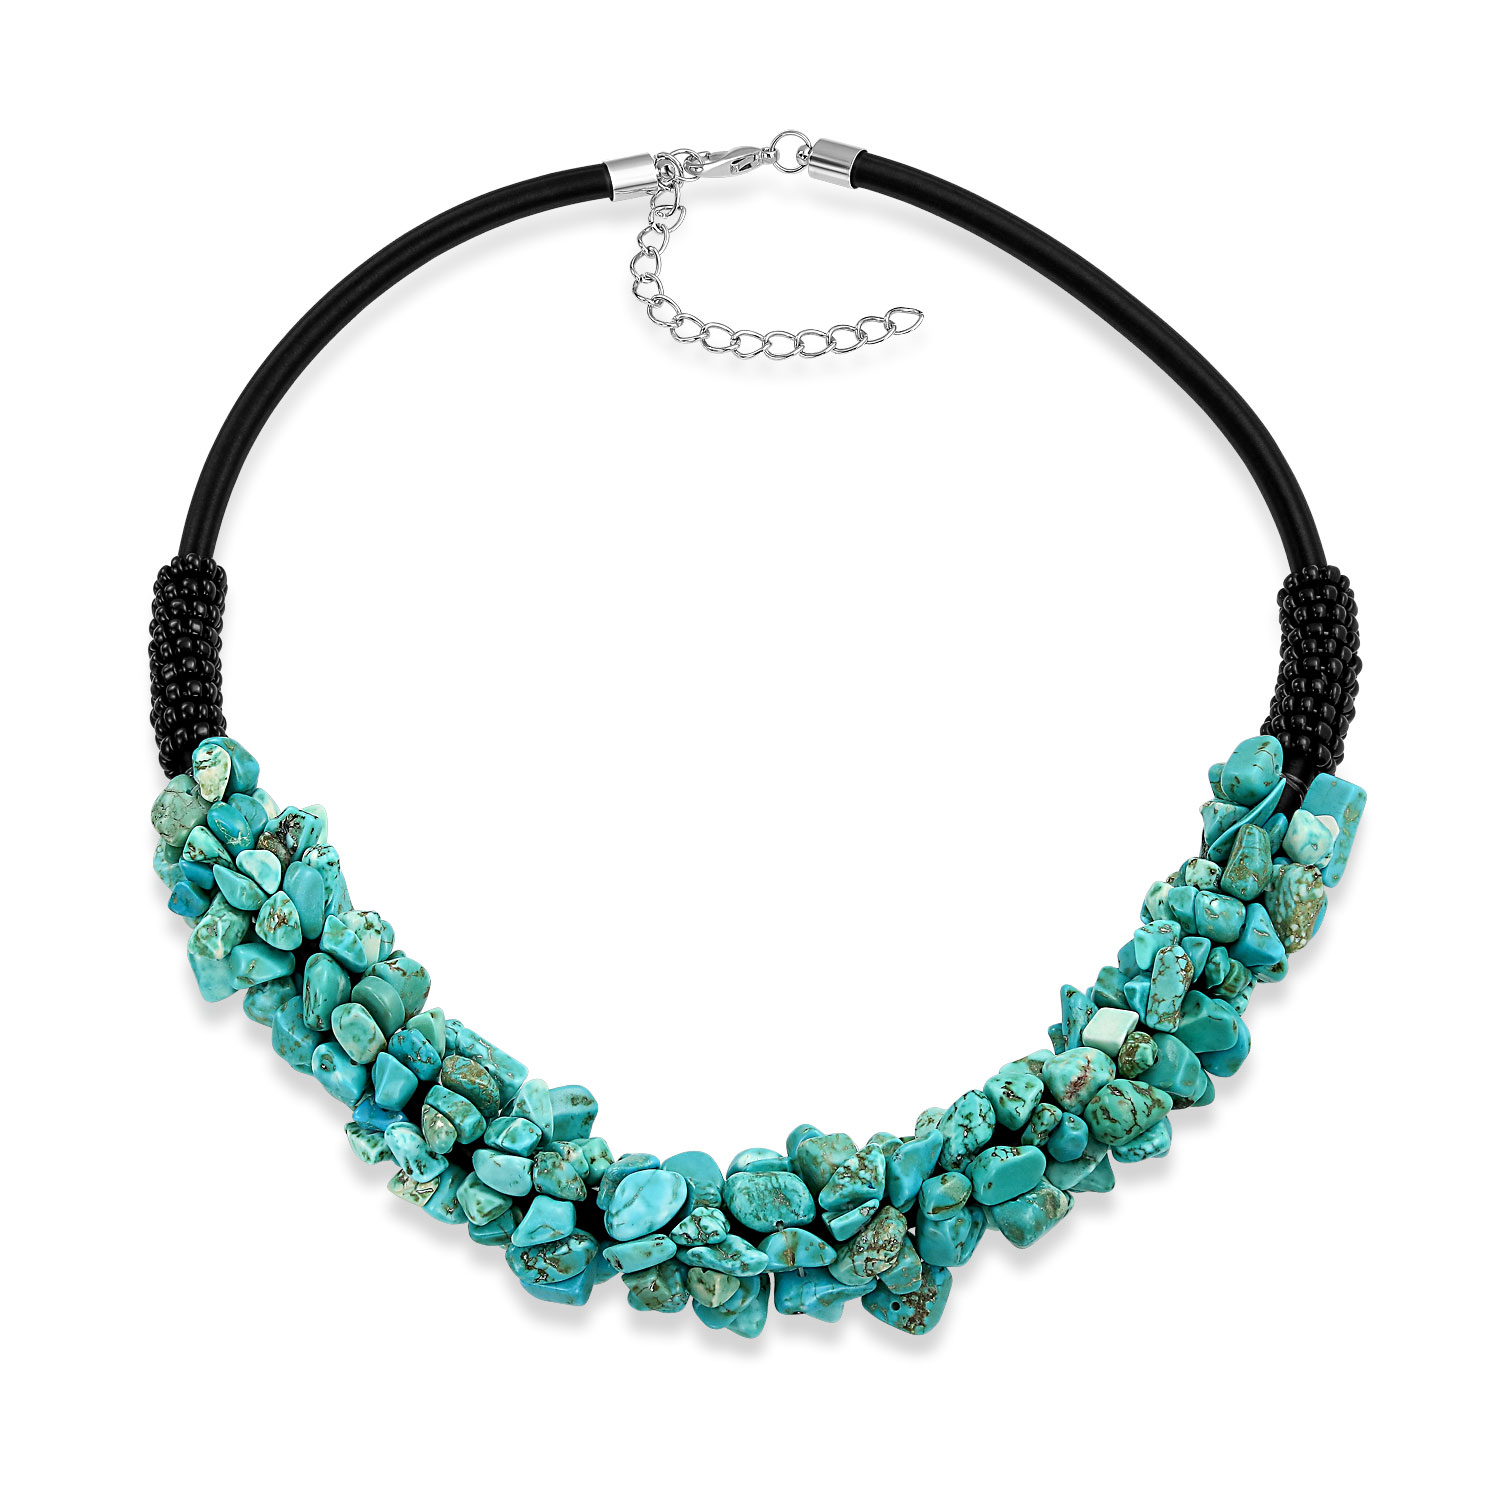 Blue Enhanced Turquoise Cluster Chip Black Faux Leather Boho Choker Collar Necklace  For Women Adjustable